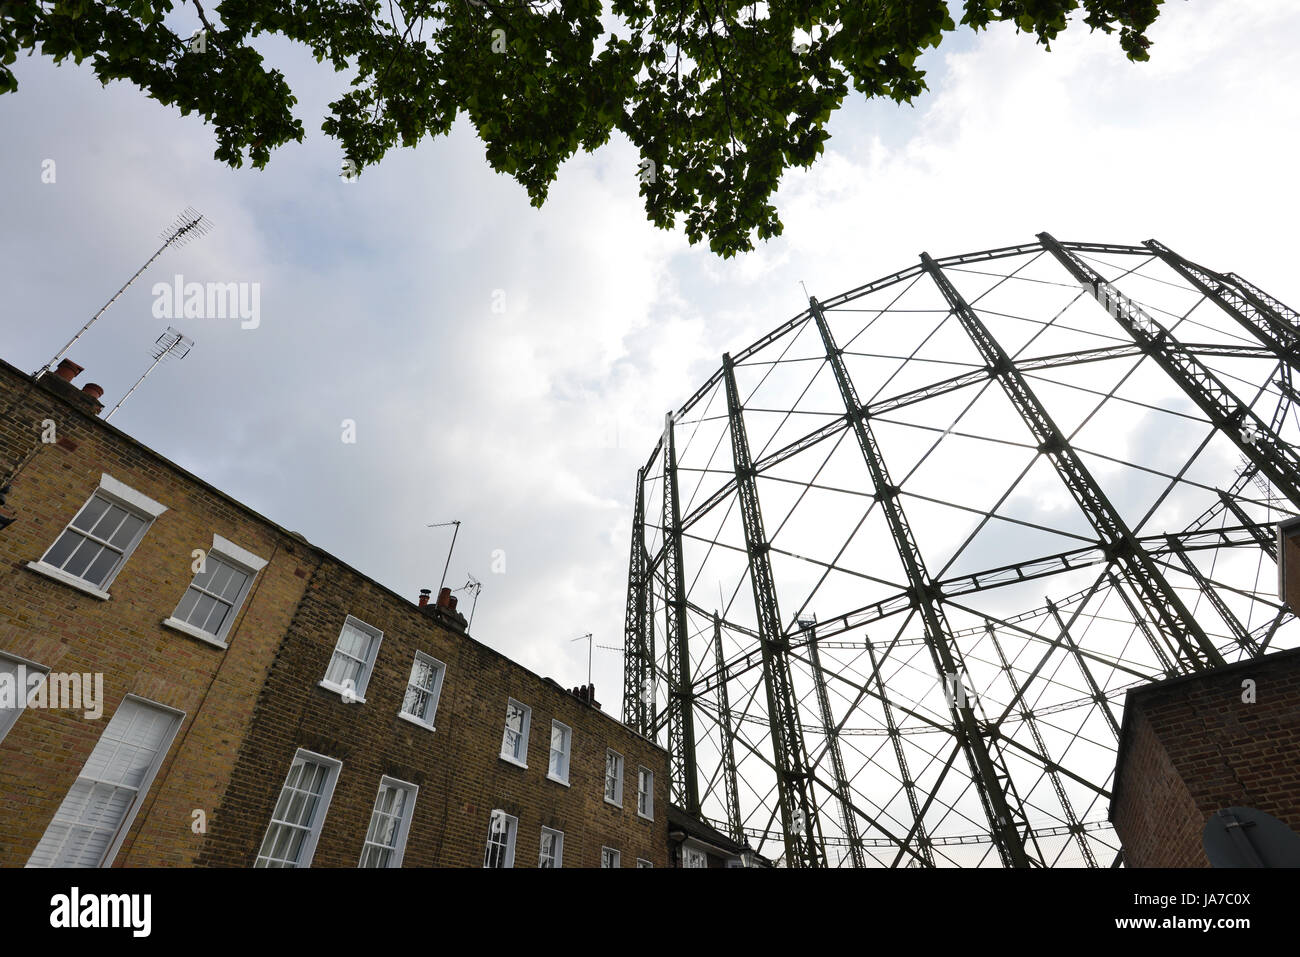 Frame of the iconic disused Oval Gas holder, London Stock